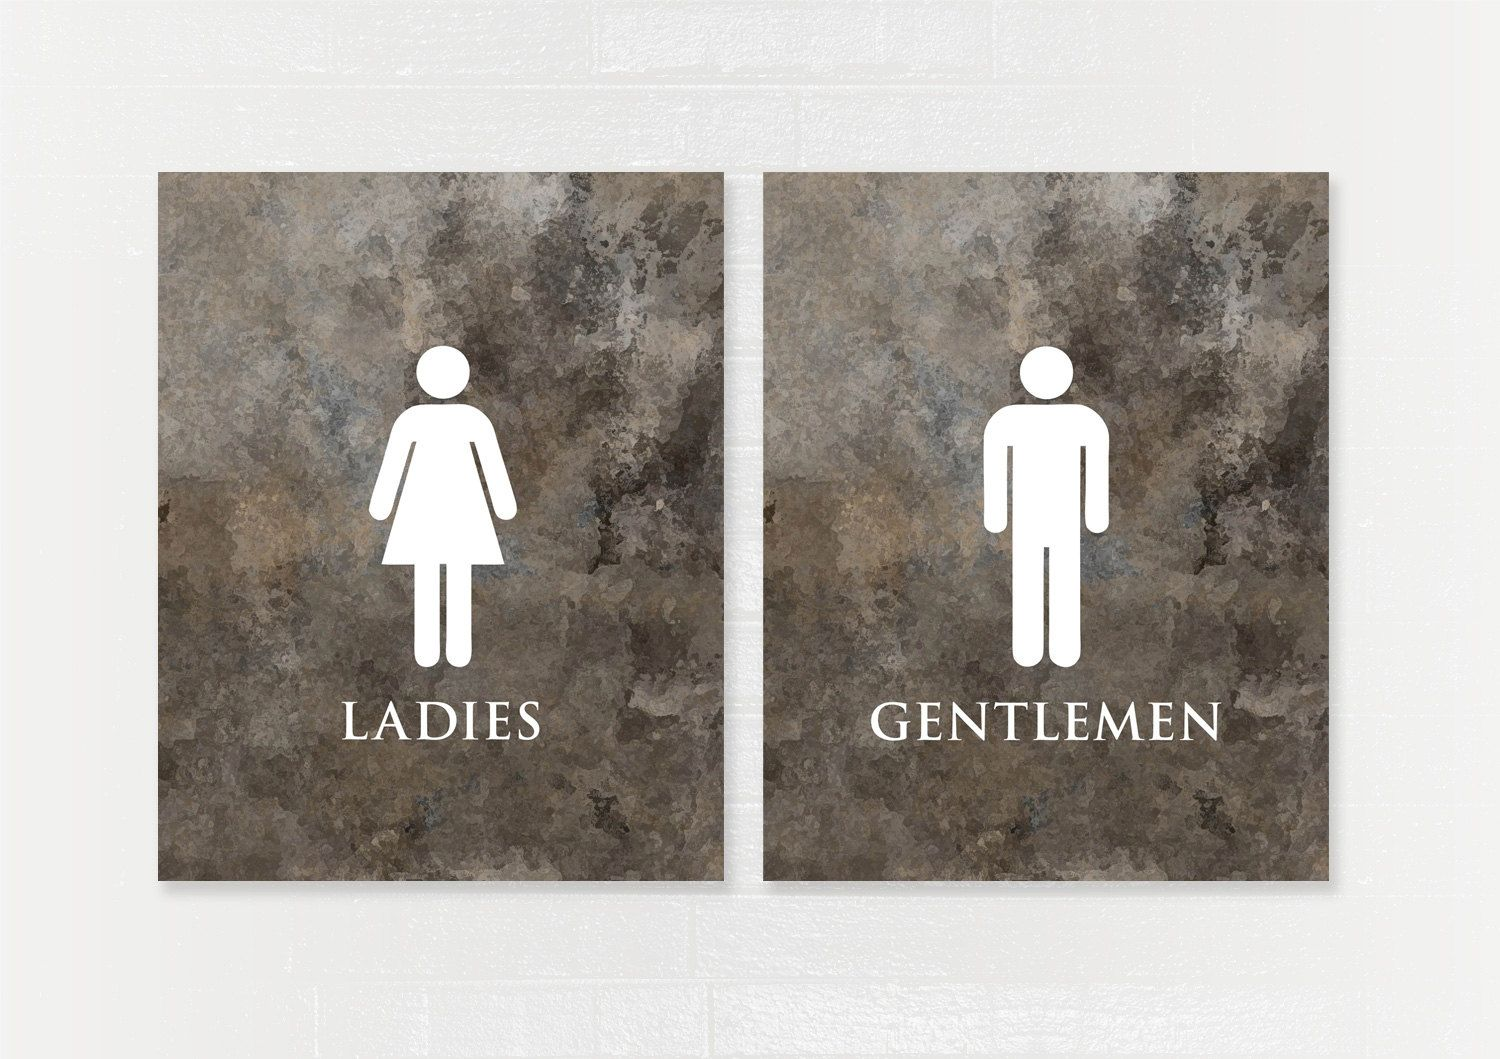 Modern Bathroom Signs Bathroom Ideas Funny Bathroom Signs For Home - Male bathroom sign